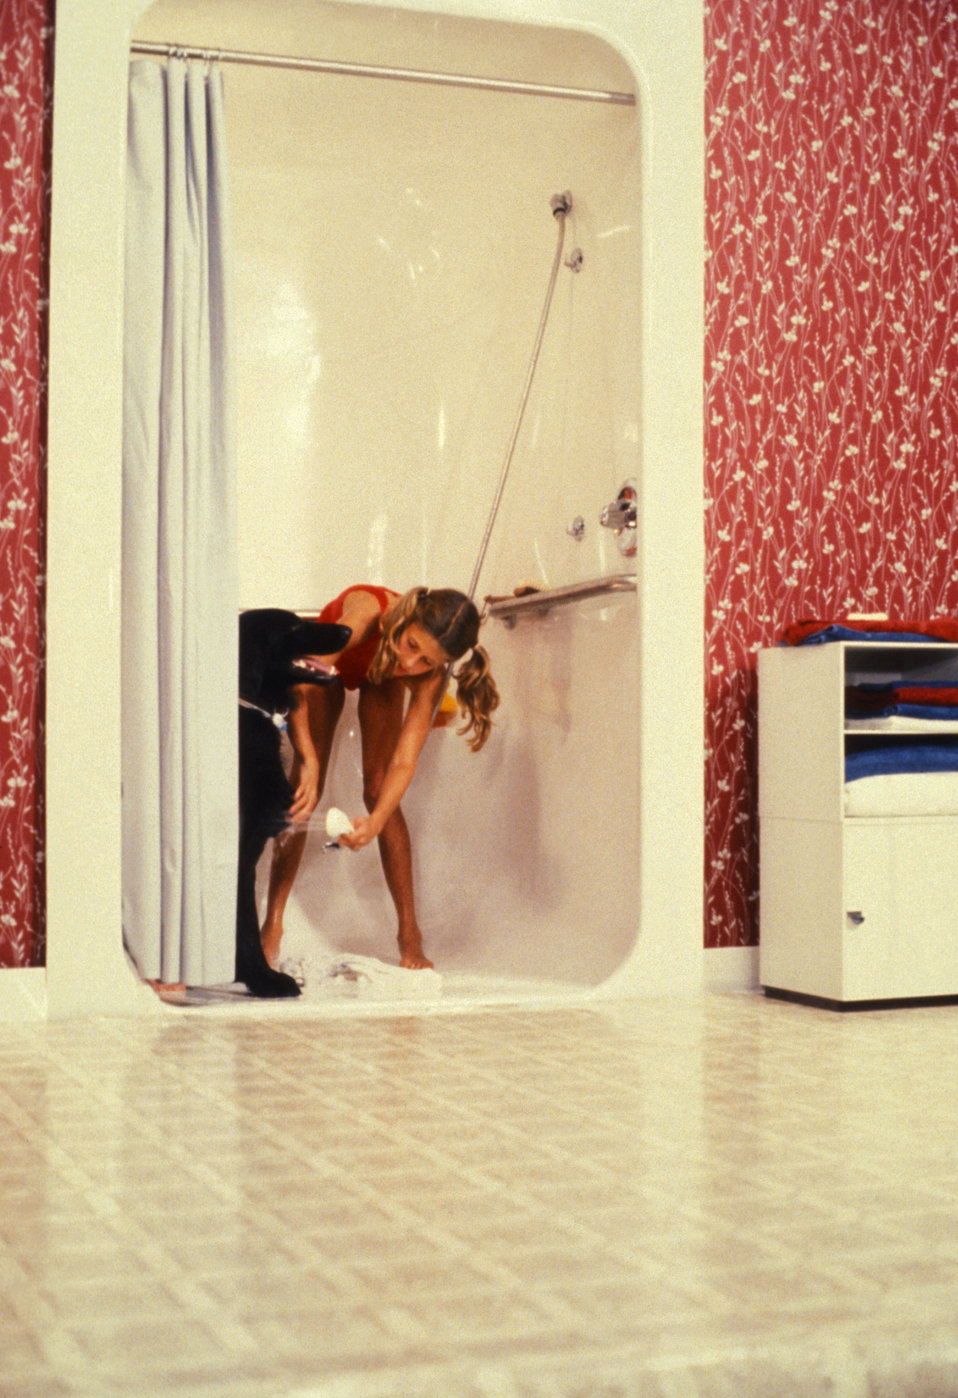 This was one of two images (PHIL# 9195 - 9196), depicting the usage of a white fiberglass 'curbless' shower stall, which was a single piece,